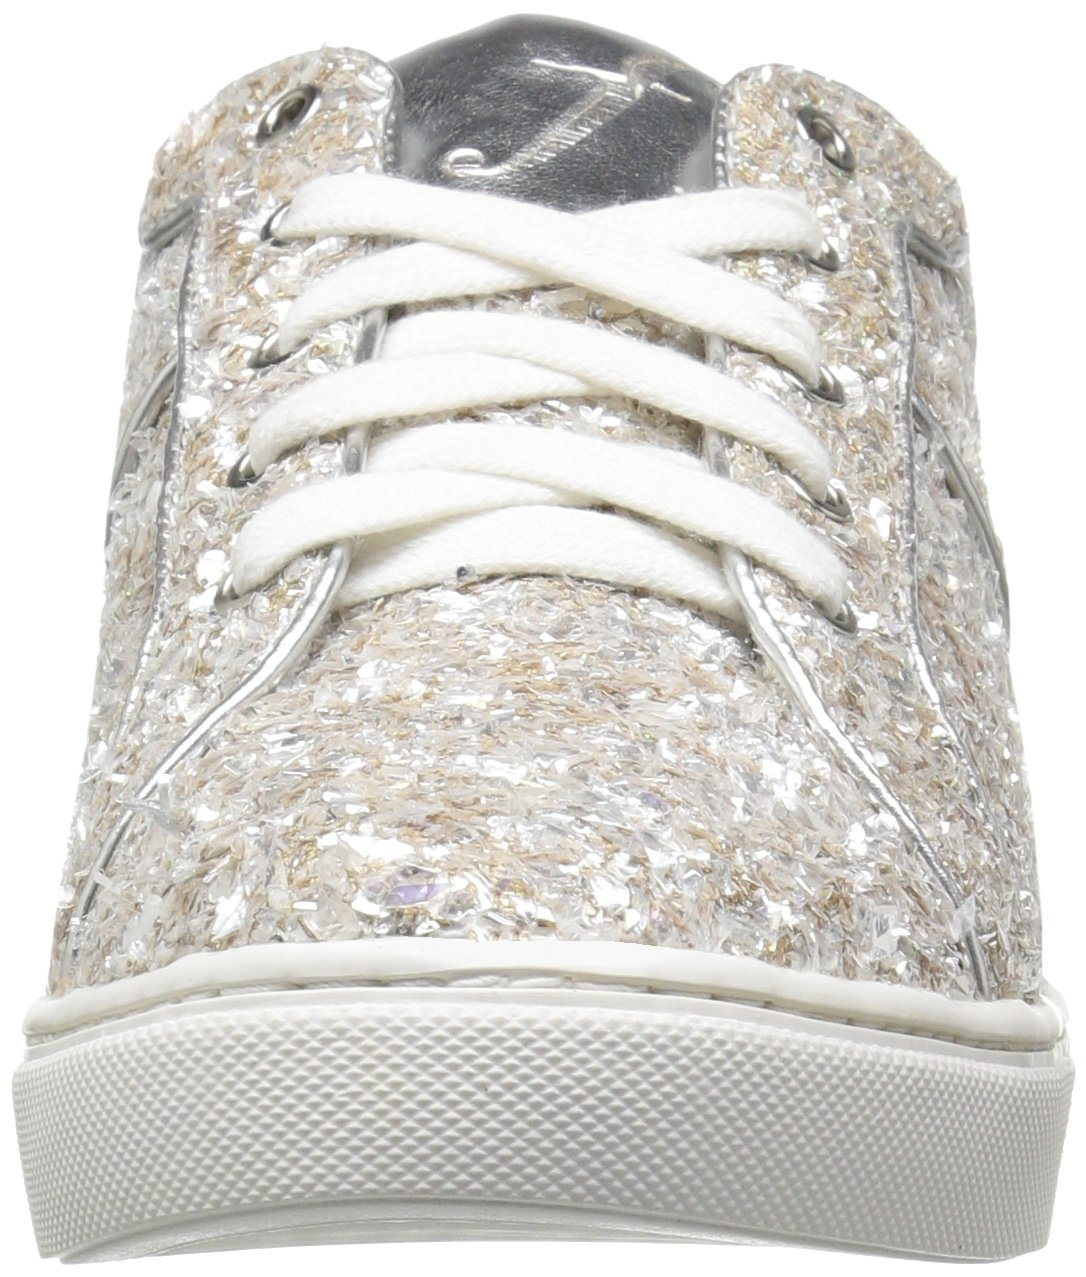 The Fix Women's Tawny Lace-up Fashion Sneaker, Silver Ice, 7.5 B US by The Fix (Image #4)